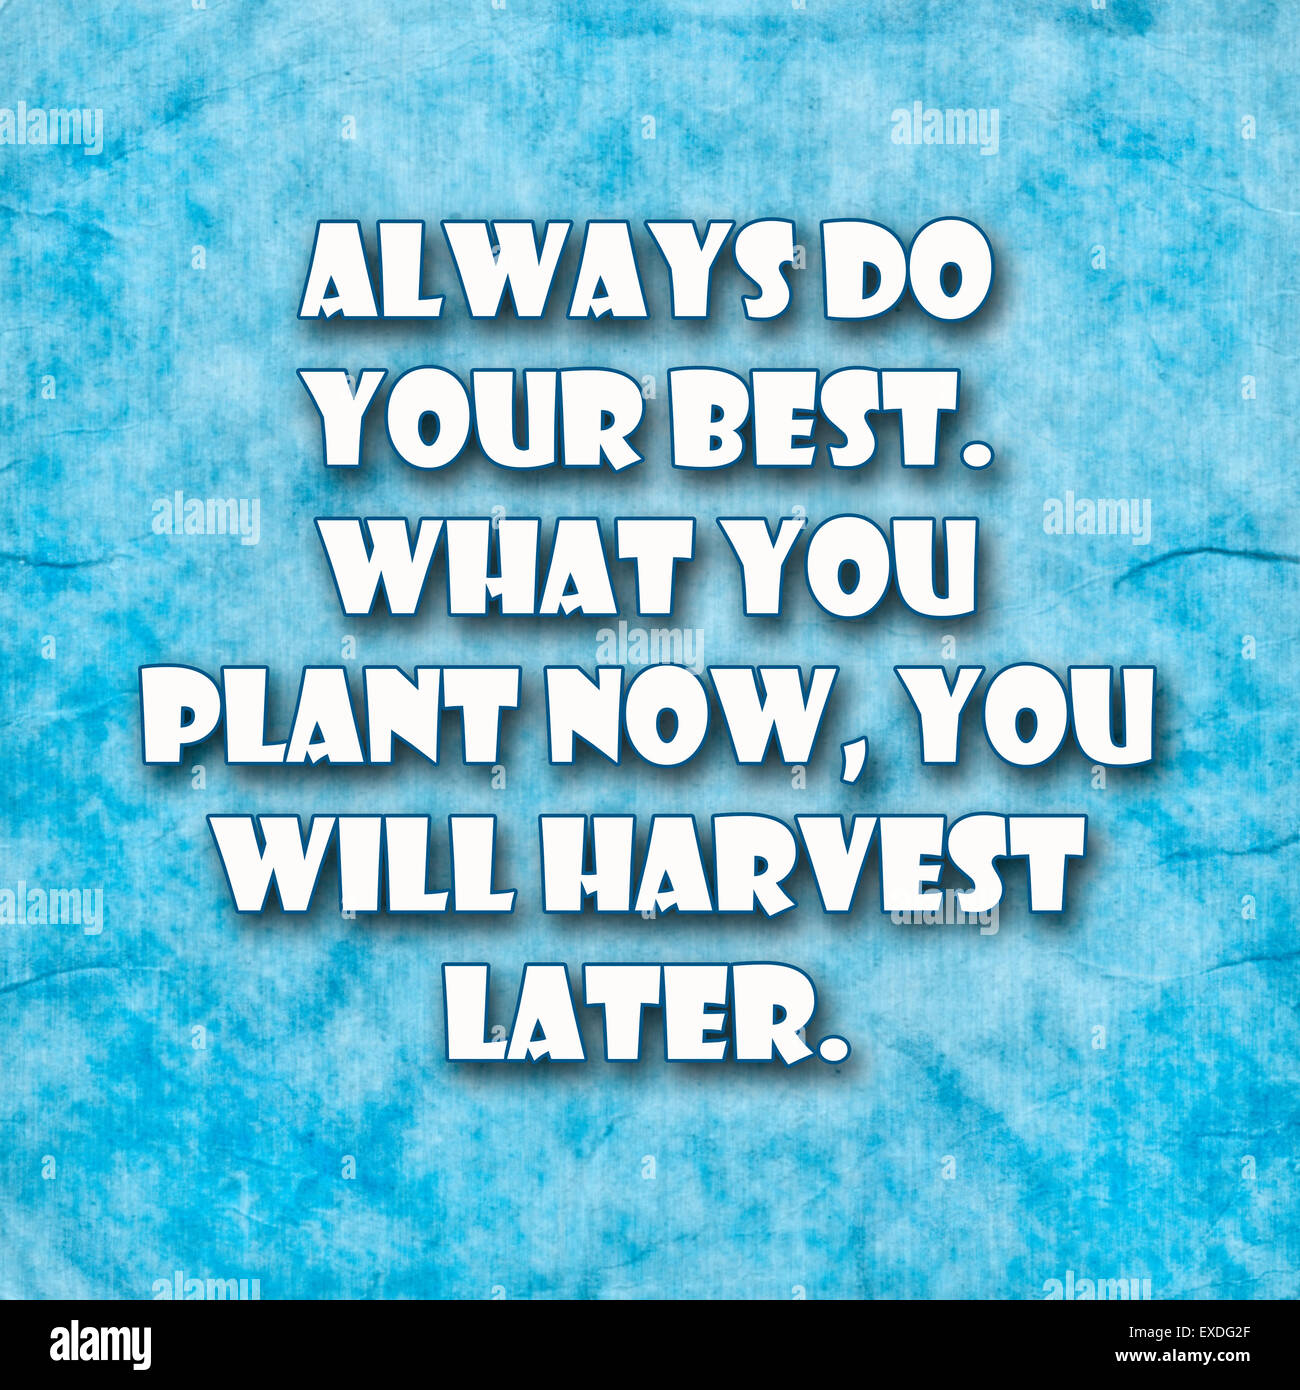 Always Do Your Best What You Plant Now You Will Harvest Latera